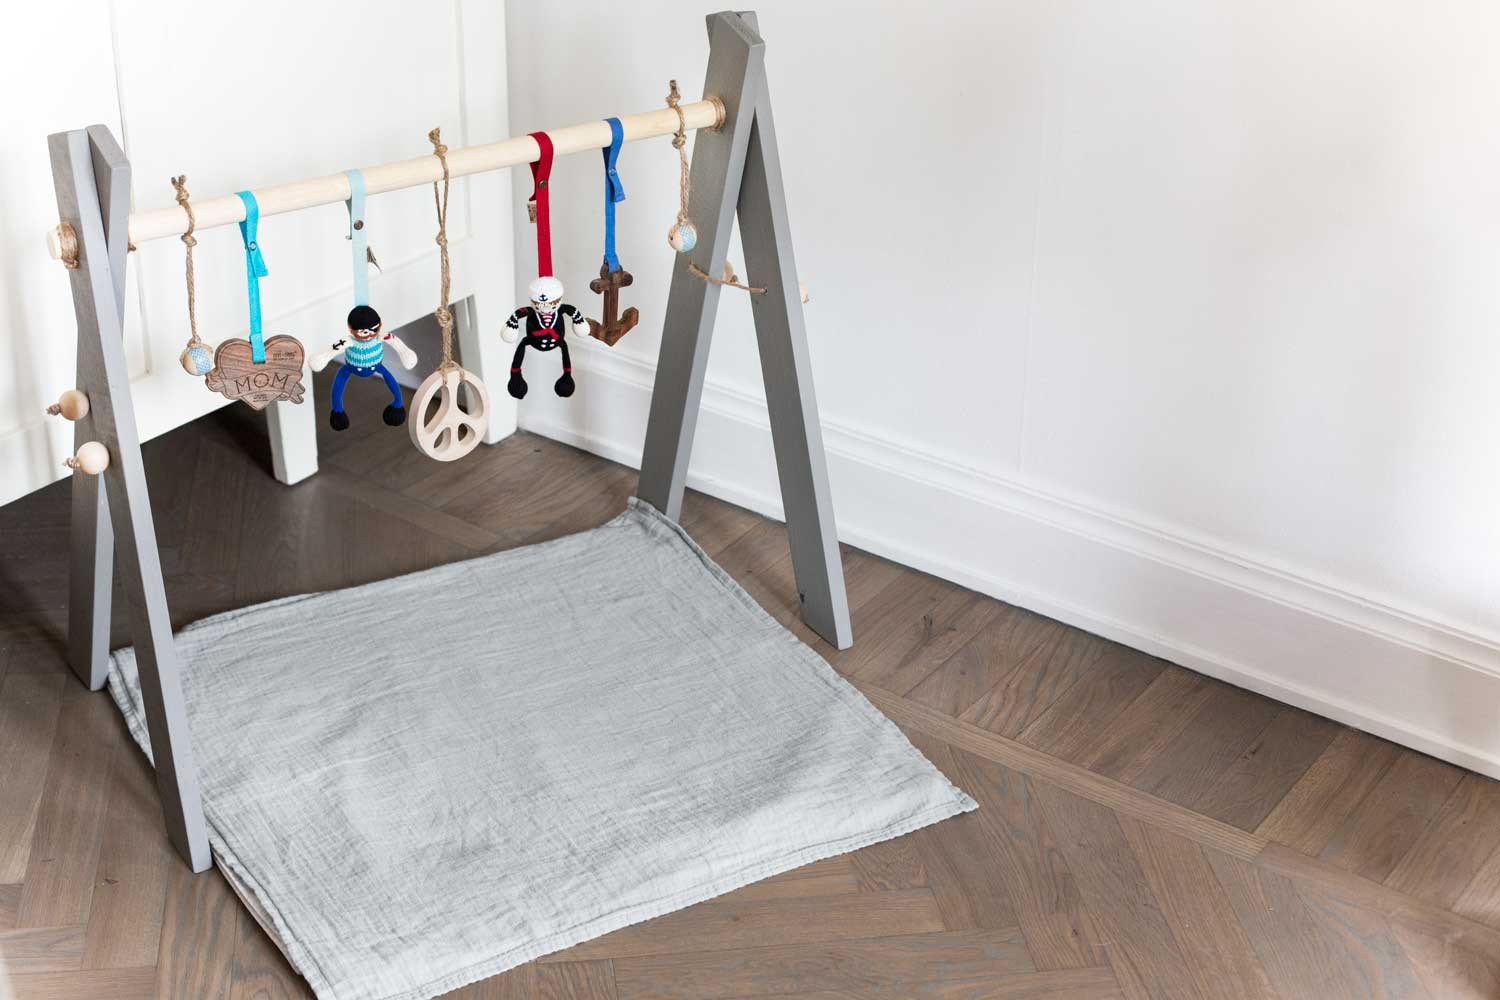 Best ideas about DIY Baby Gym . Save or Pin Make it last — DIY baby gym Now.